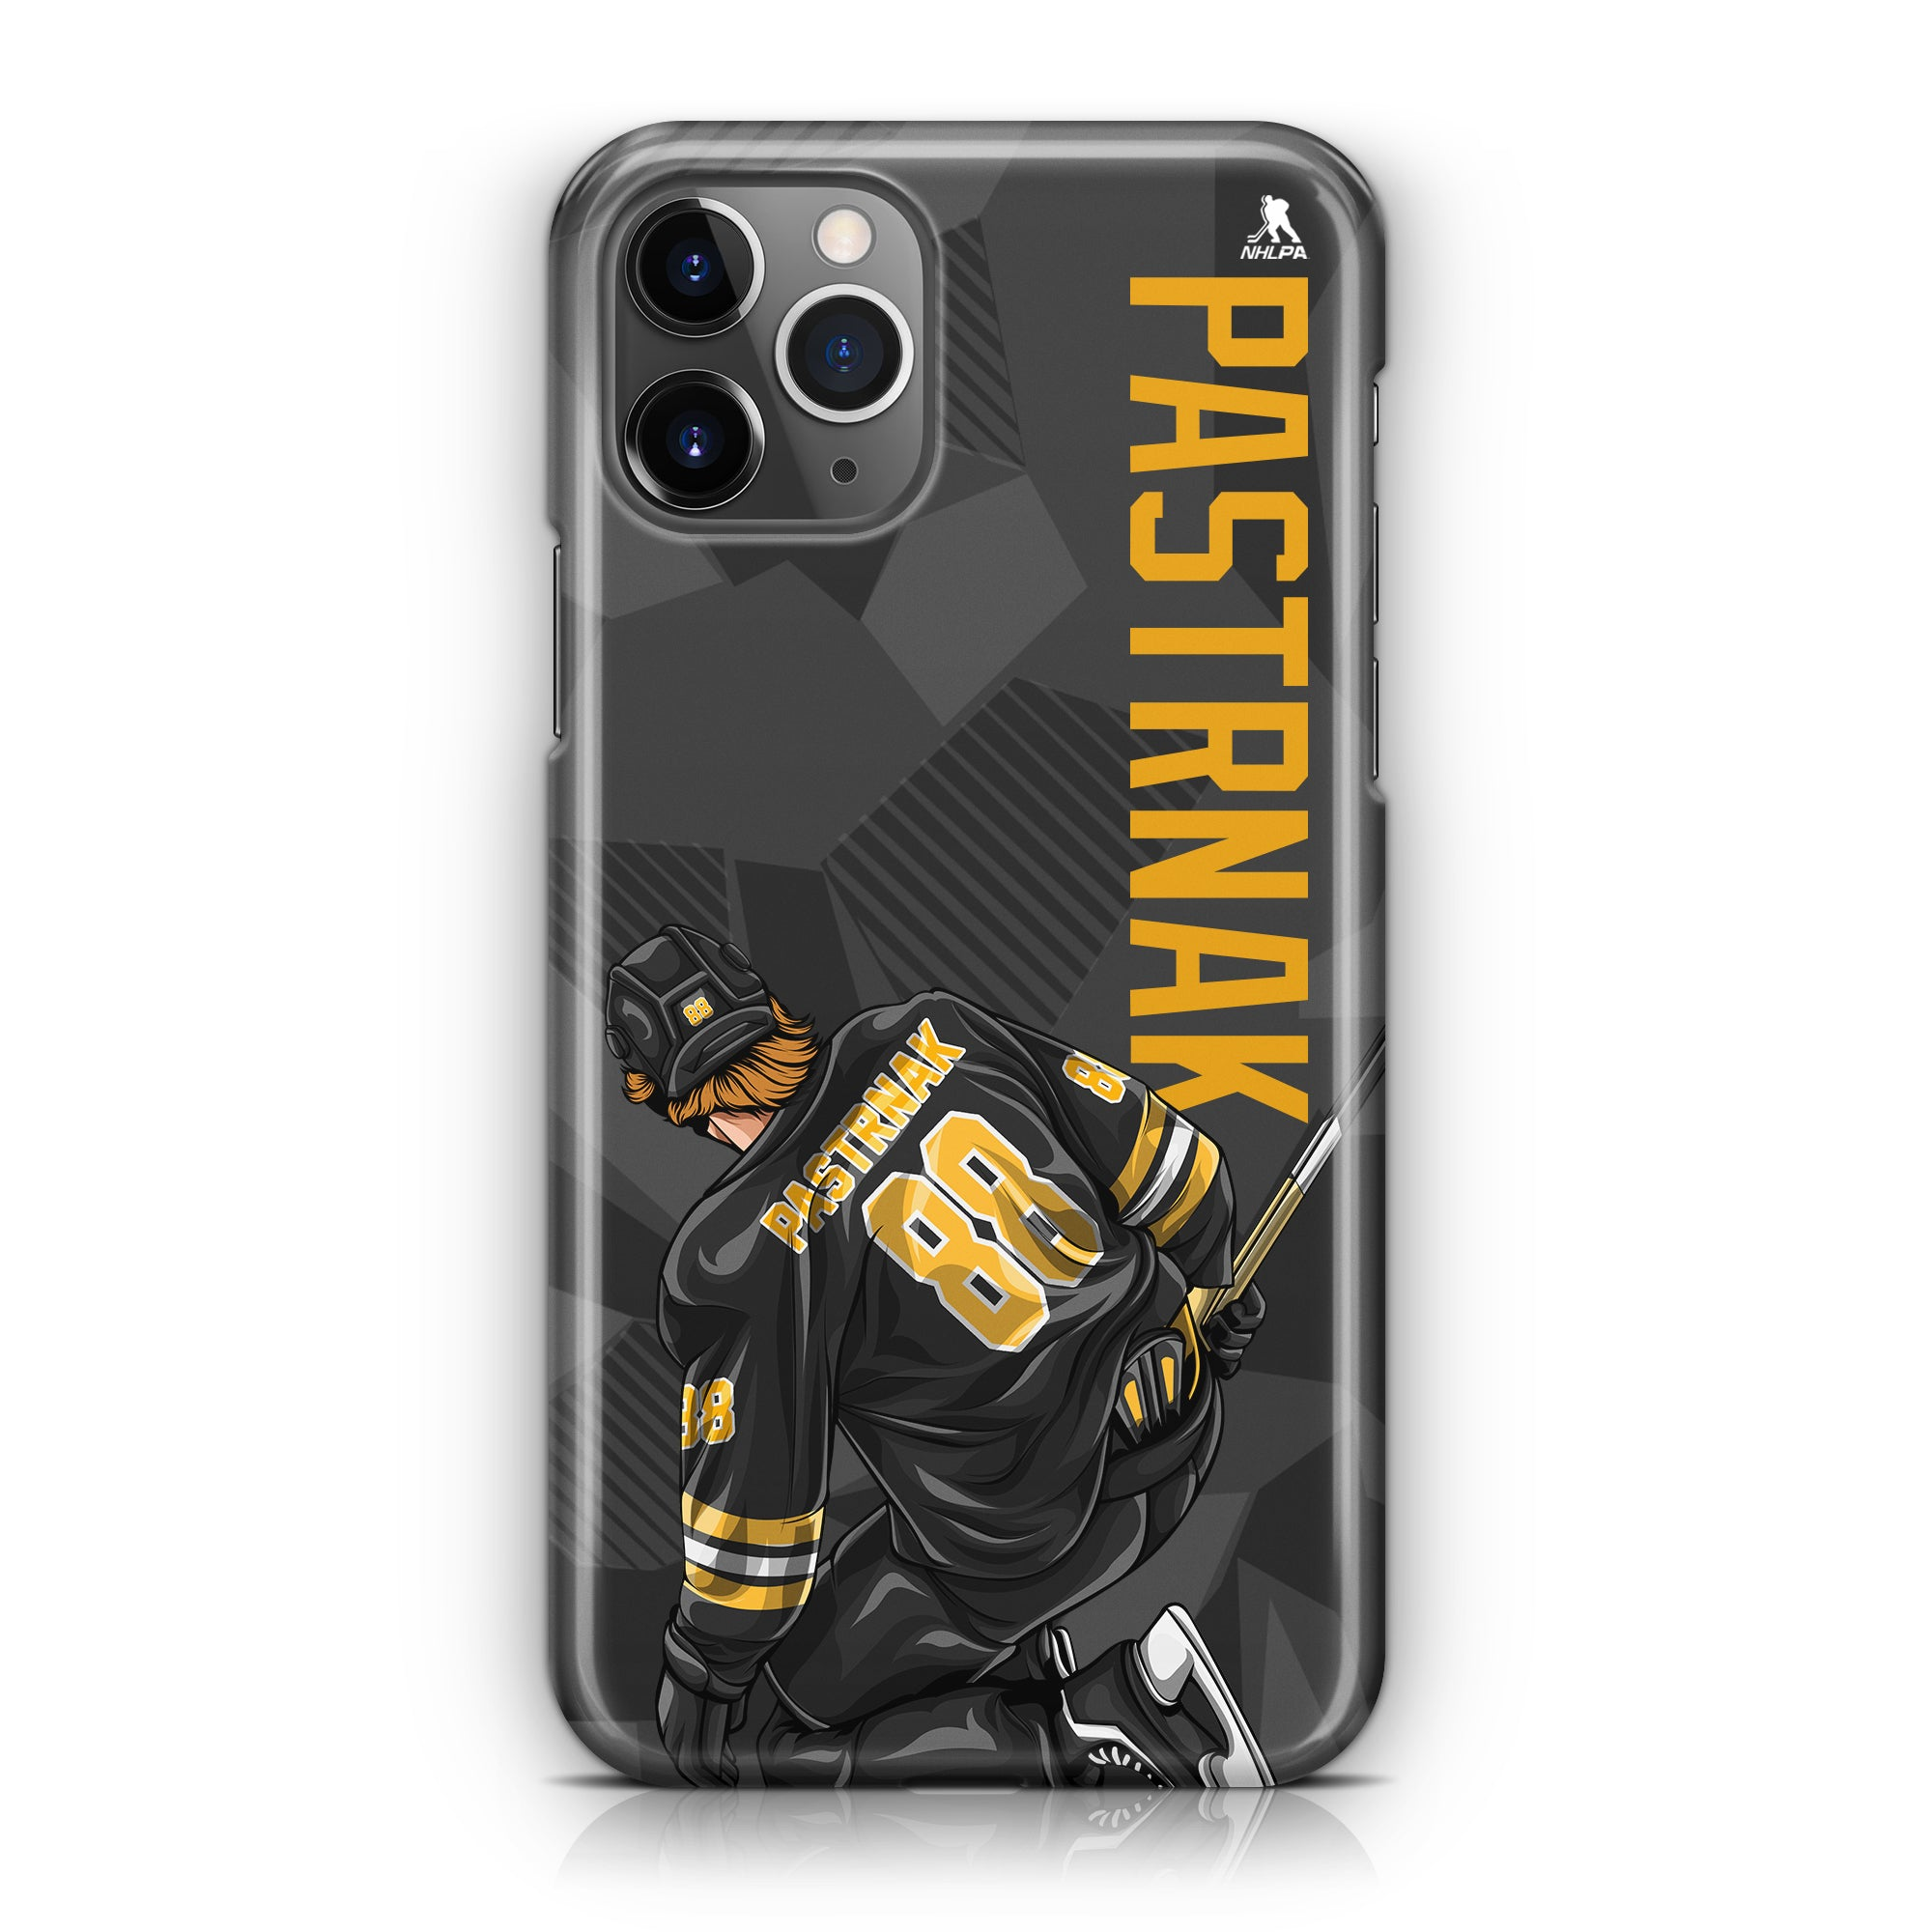 Pastrnak Star Series 2.0 Case